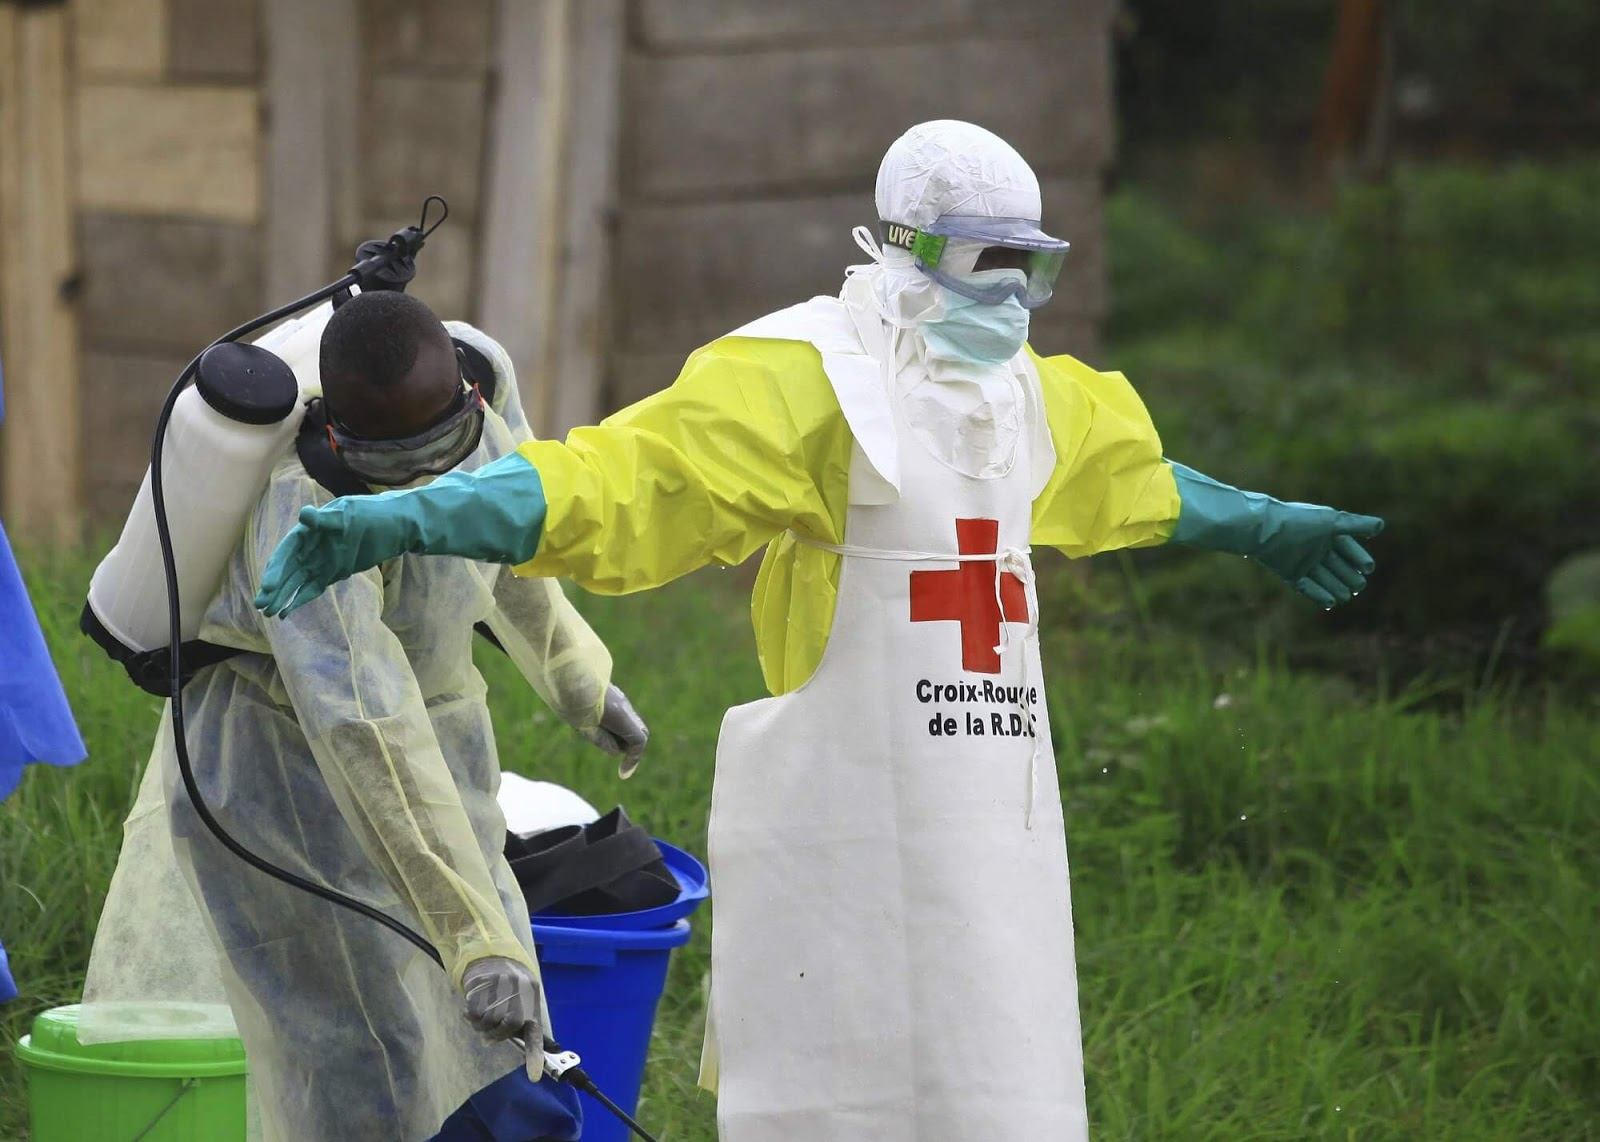 Ebola outbreak deaths top 1,000 in Congo amid clinic attacks